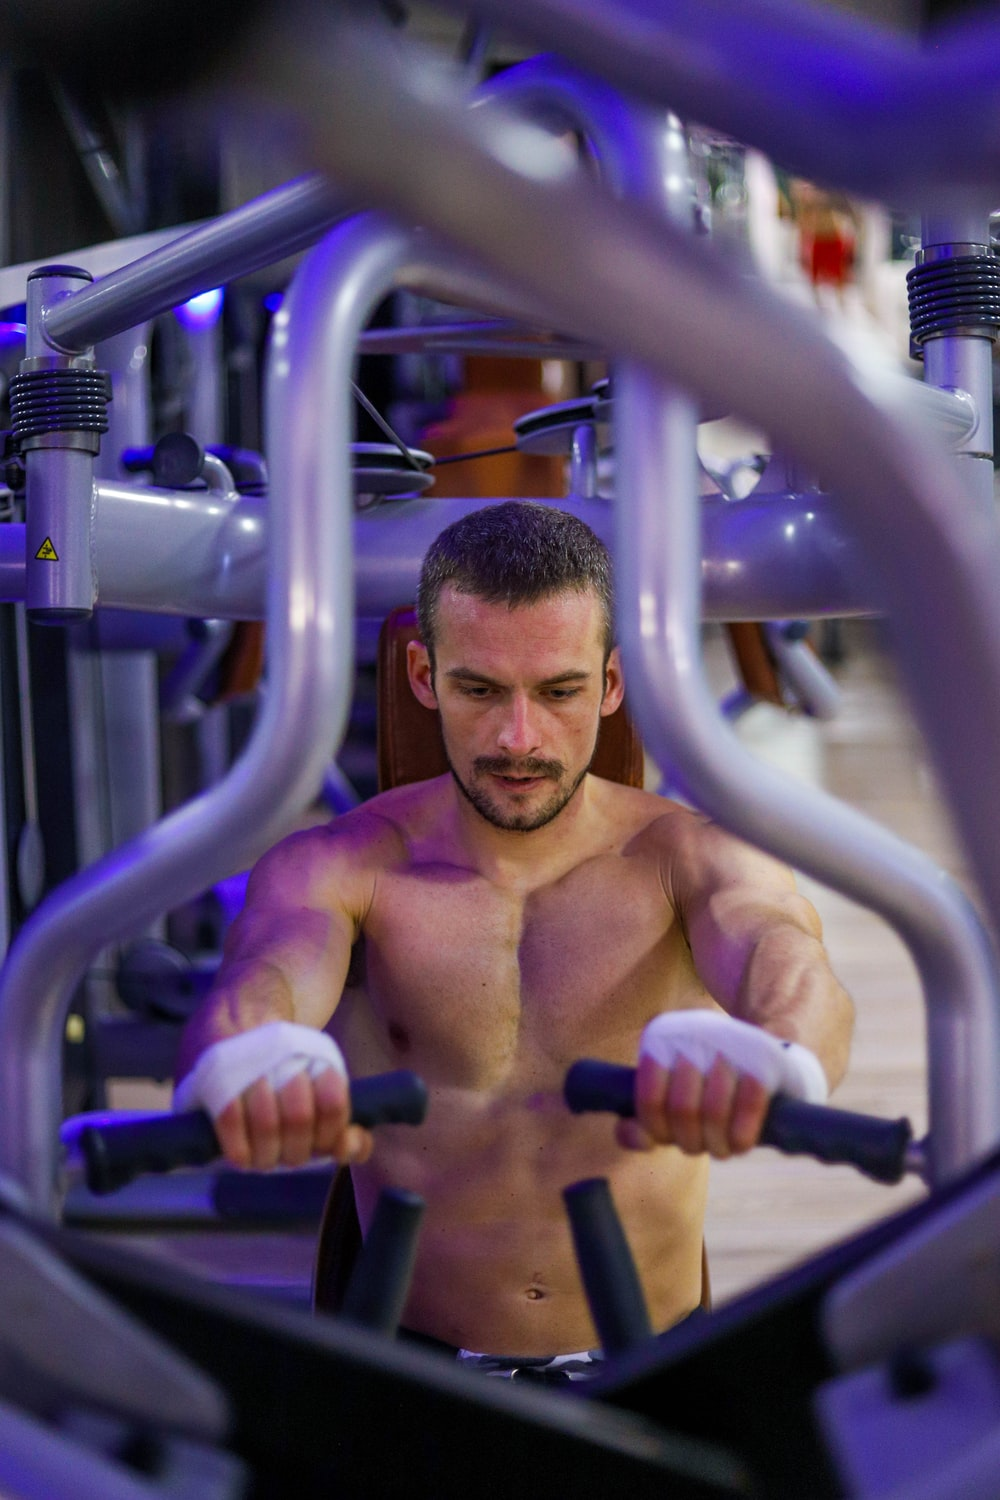 Is It Worth To Hire A Spinning Sports Fitness Trainer?